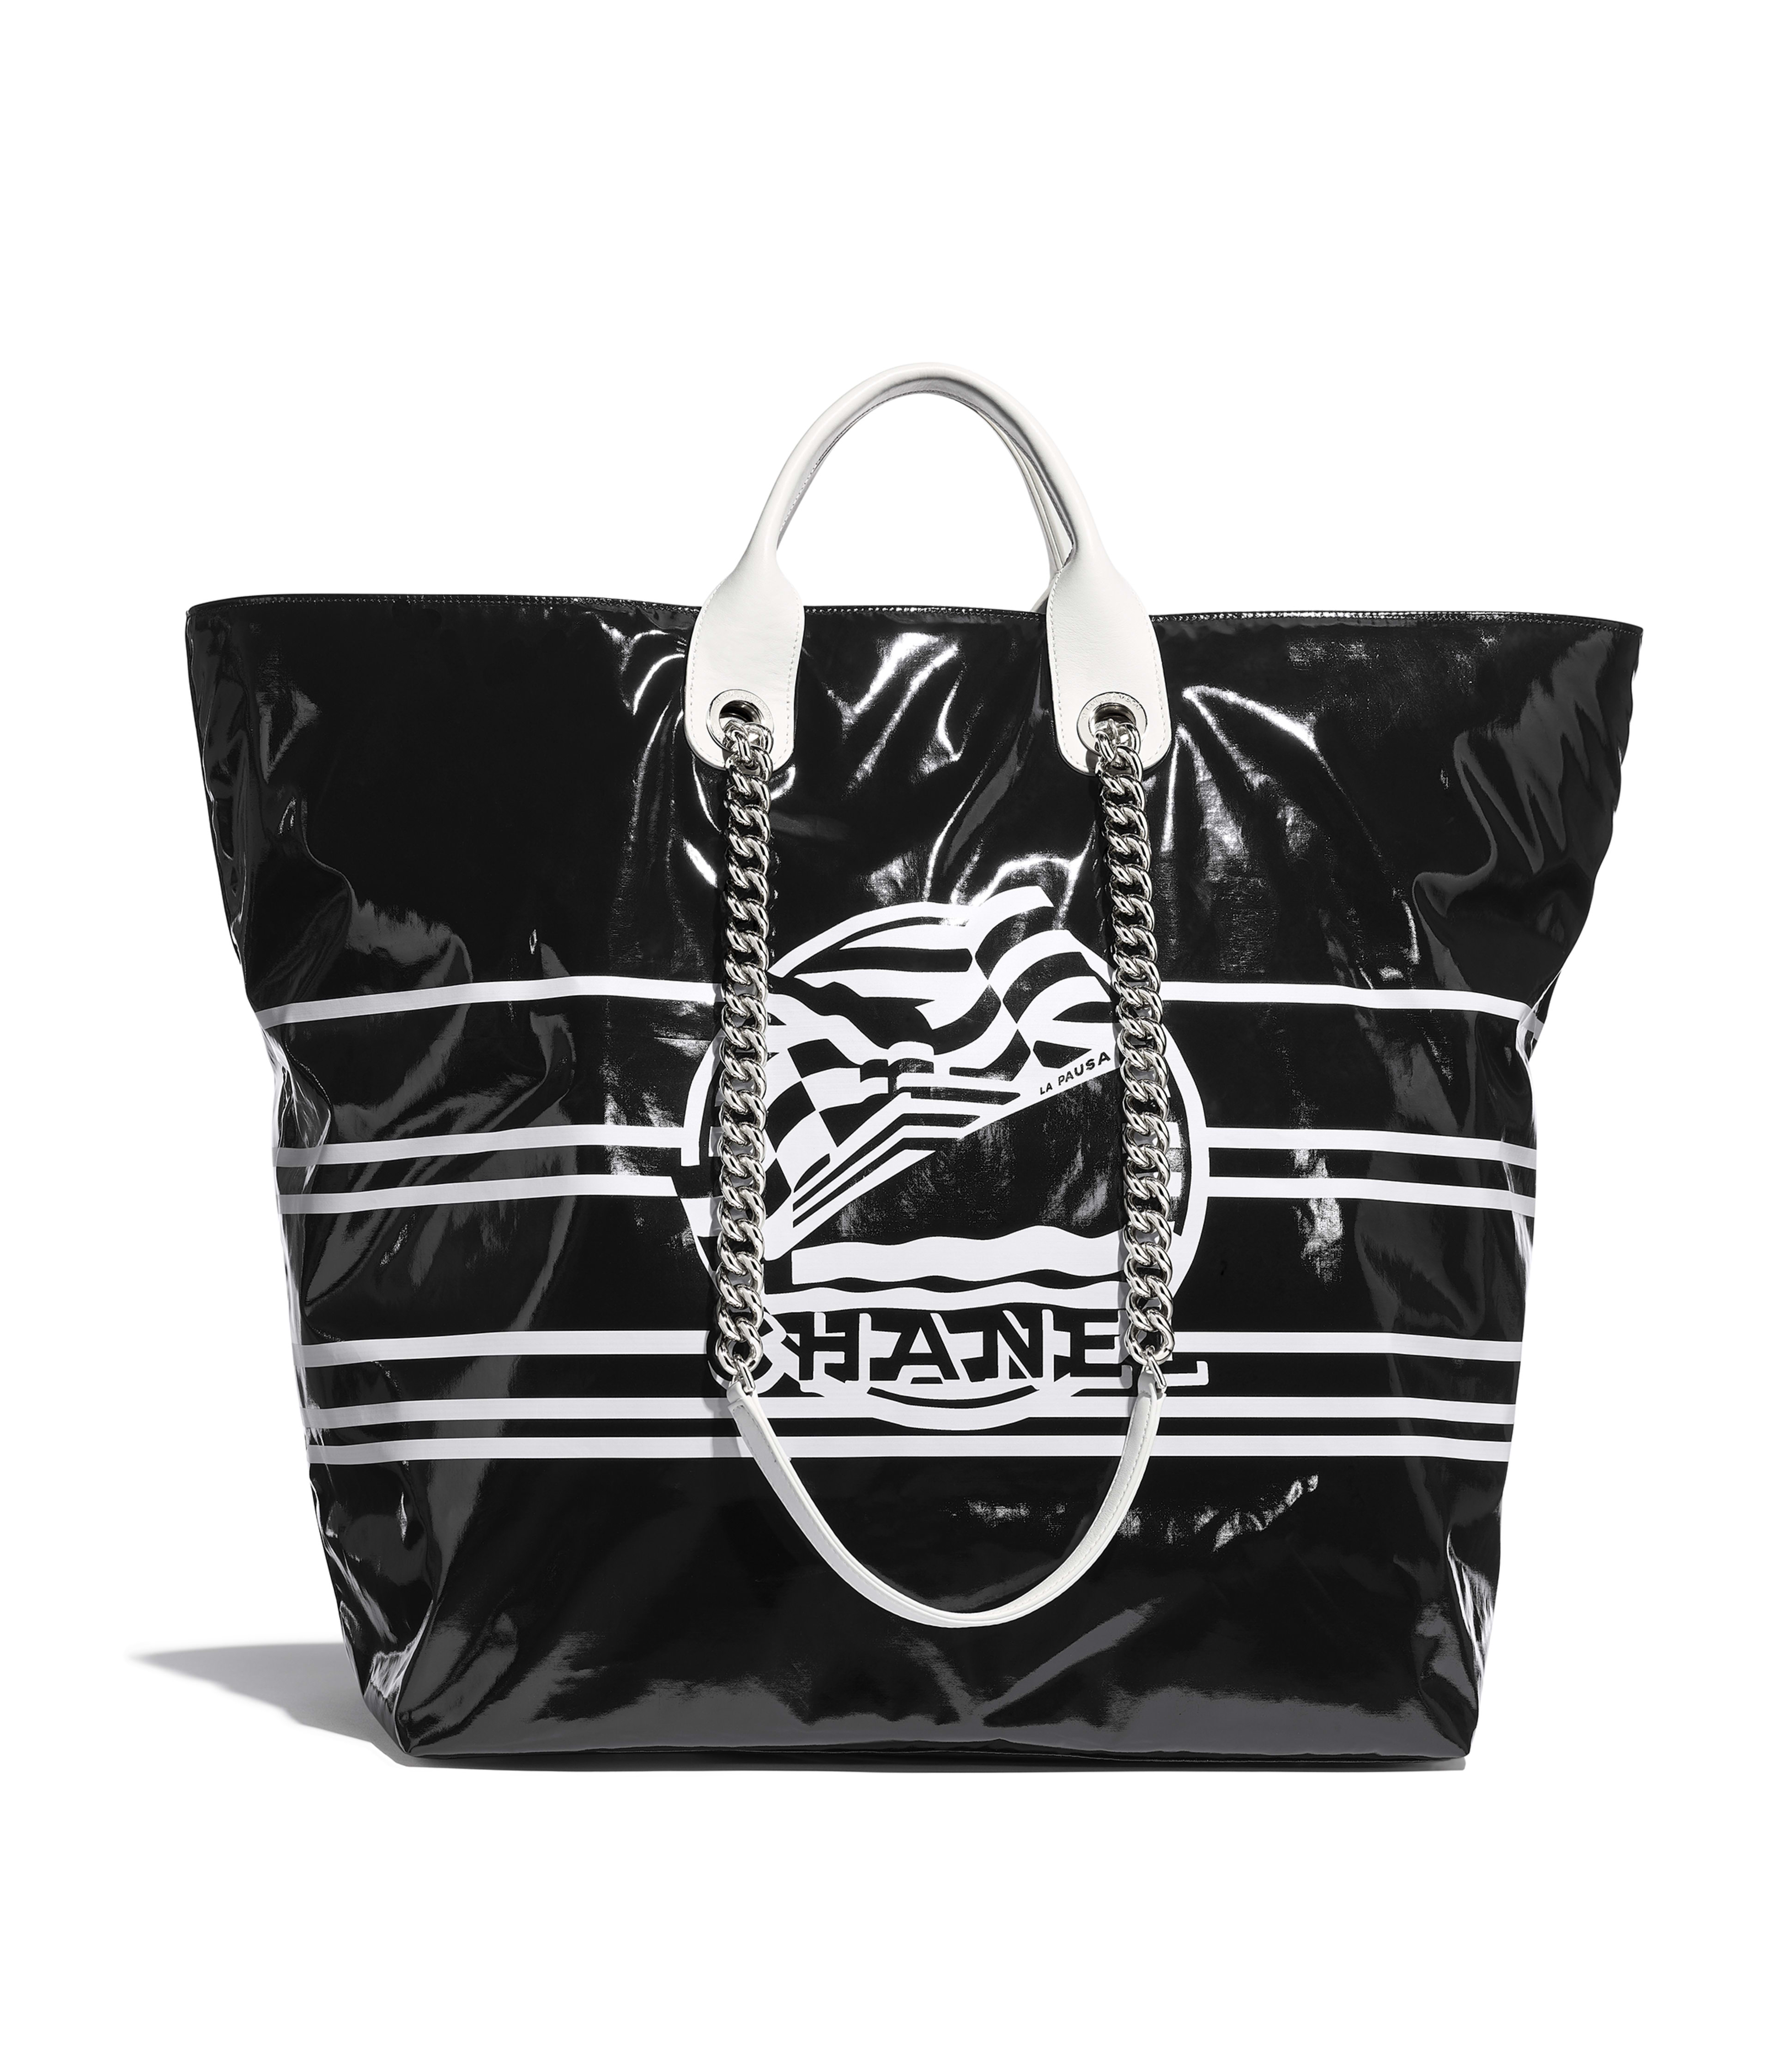 0855315b22361f Large Shopping Bag Vinyl, Cotton, Mixed Fibers, Calfskin & Silver-Tone  Metal, Black Ref. AS0087Y8410694305